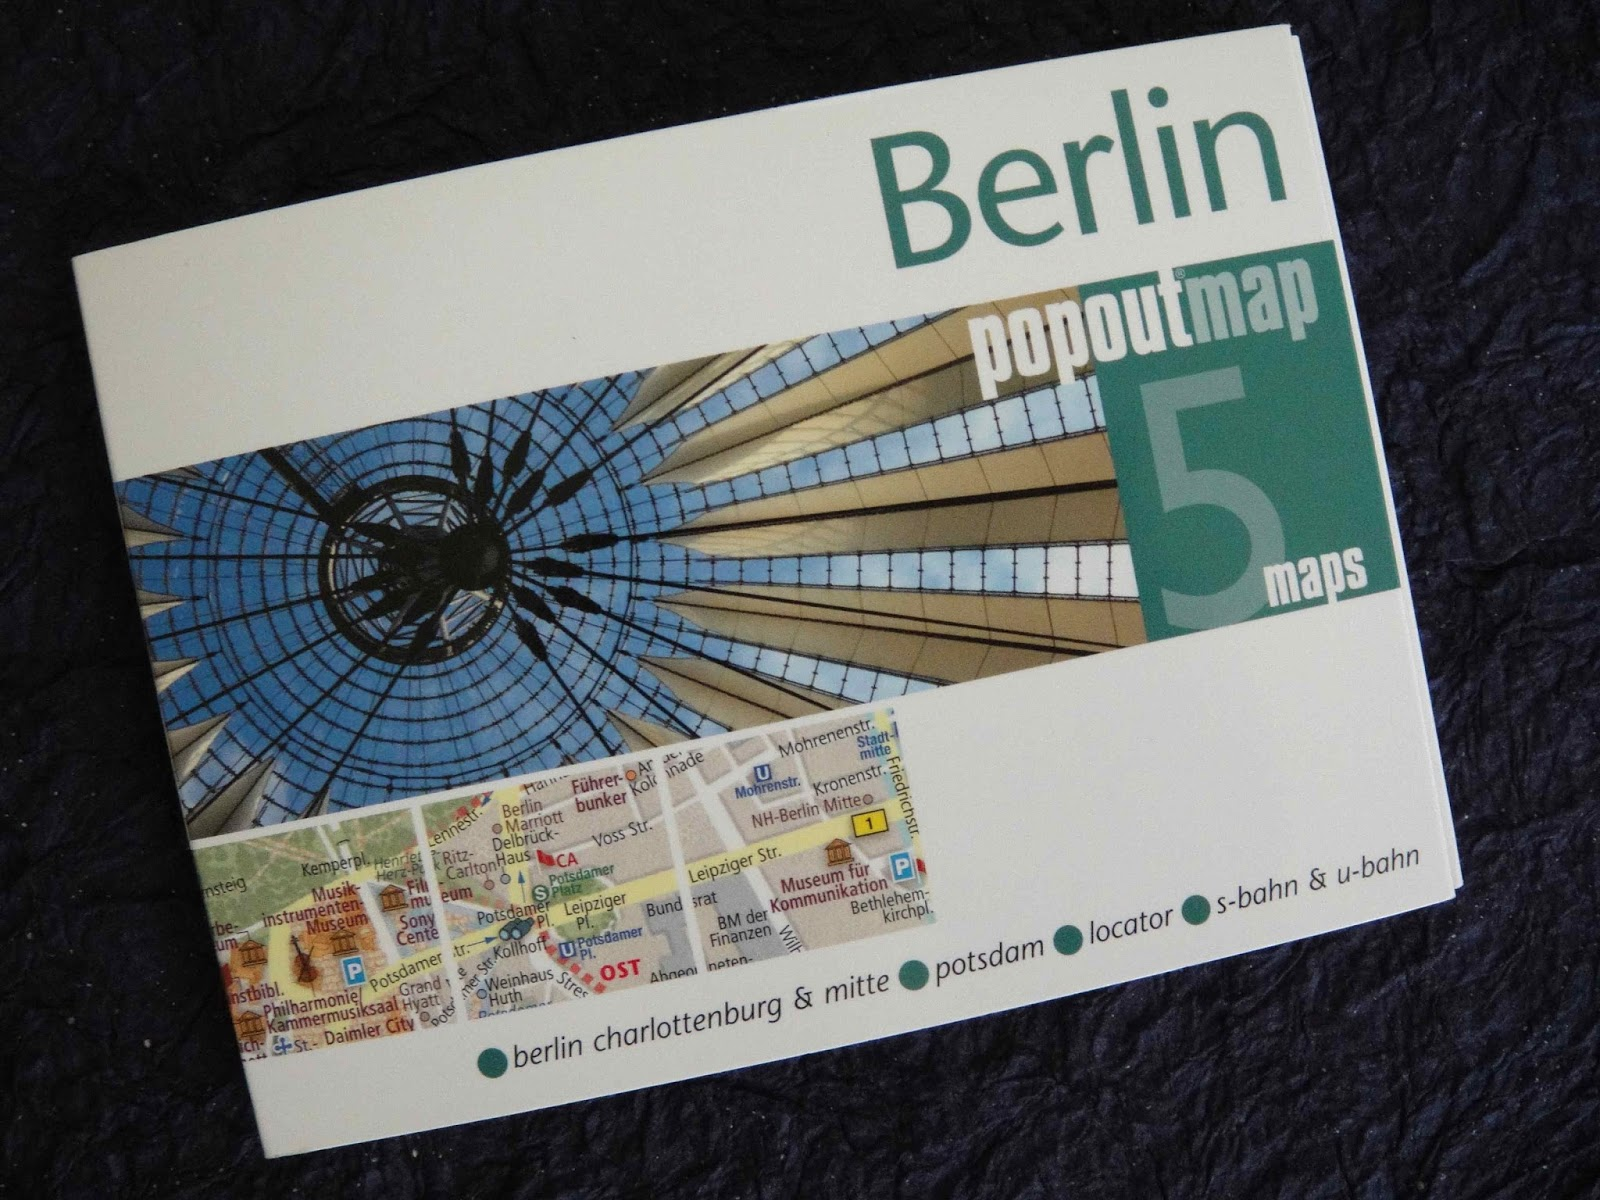 Berlin Popoutmap Compass Maps Ltd UK 2013